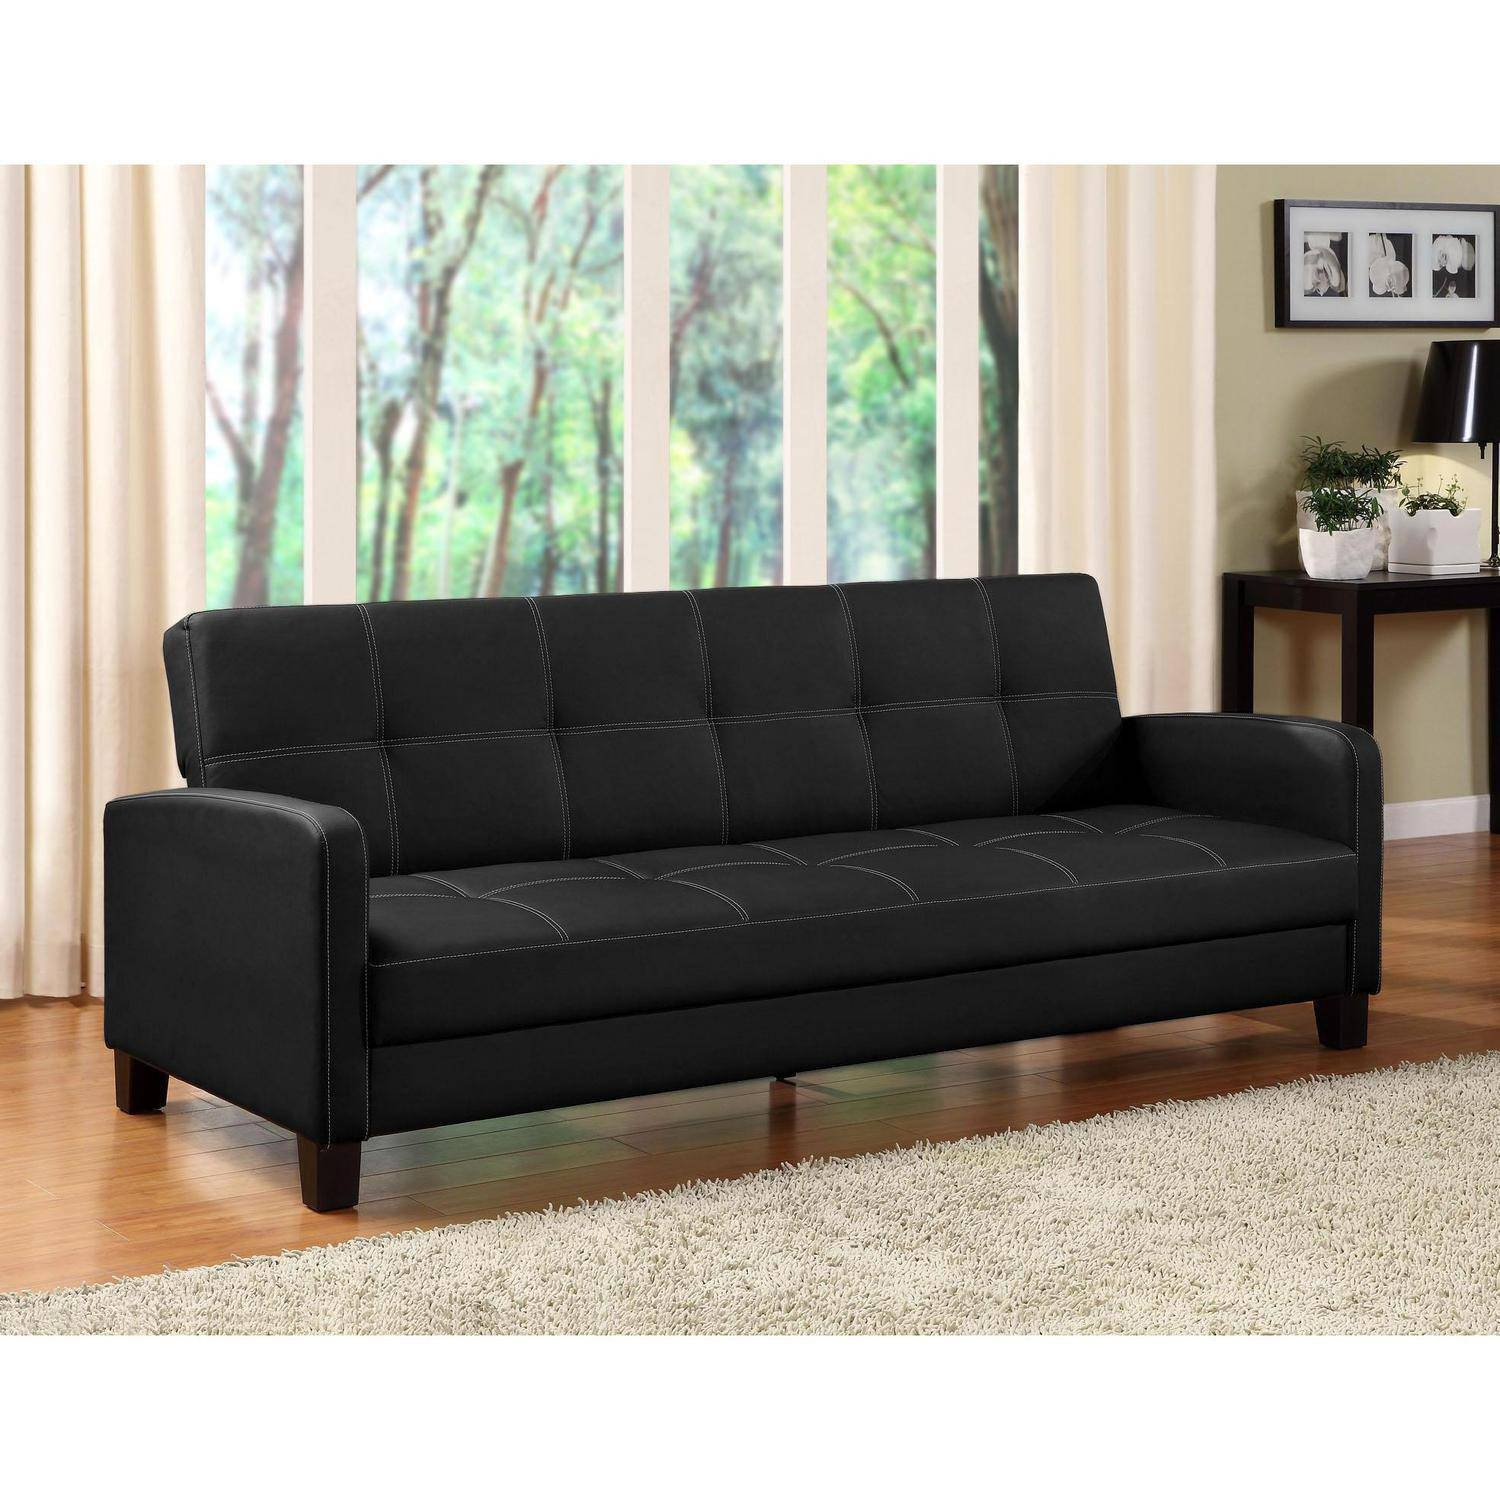 Dhp Delaney Sofa Sleeper, Multiple Colors - Walmart throughout Mini Sofa Sleepers (Image 3 of 30)